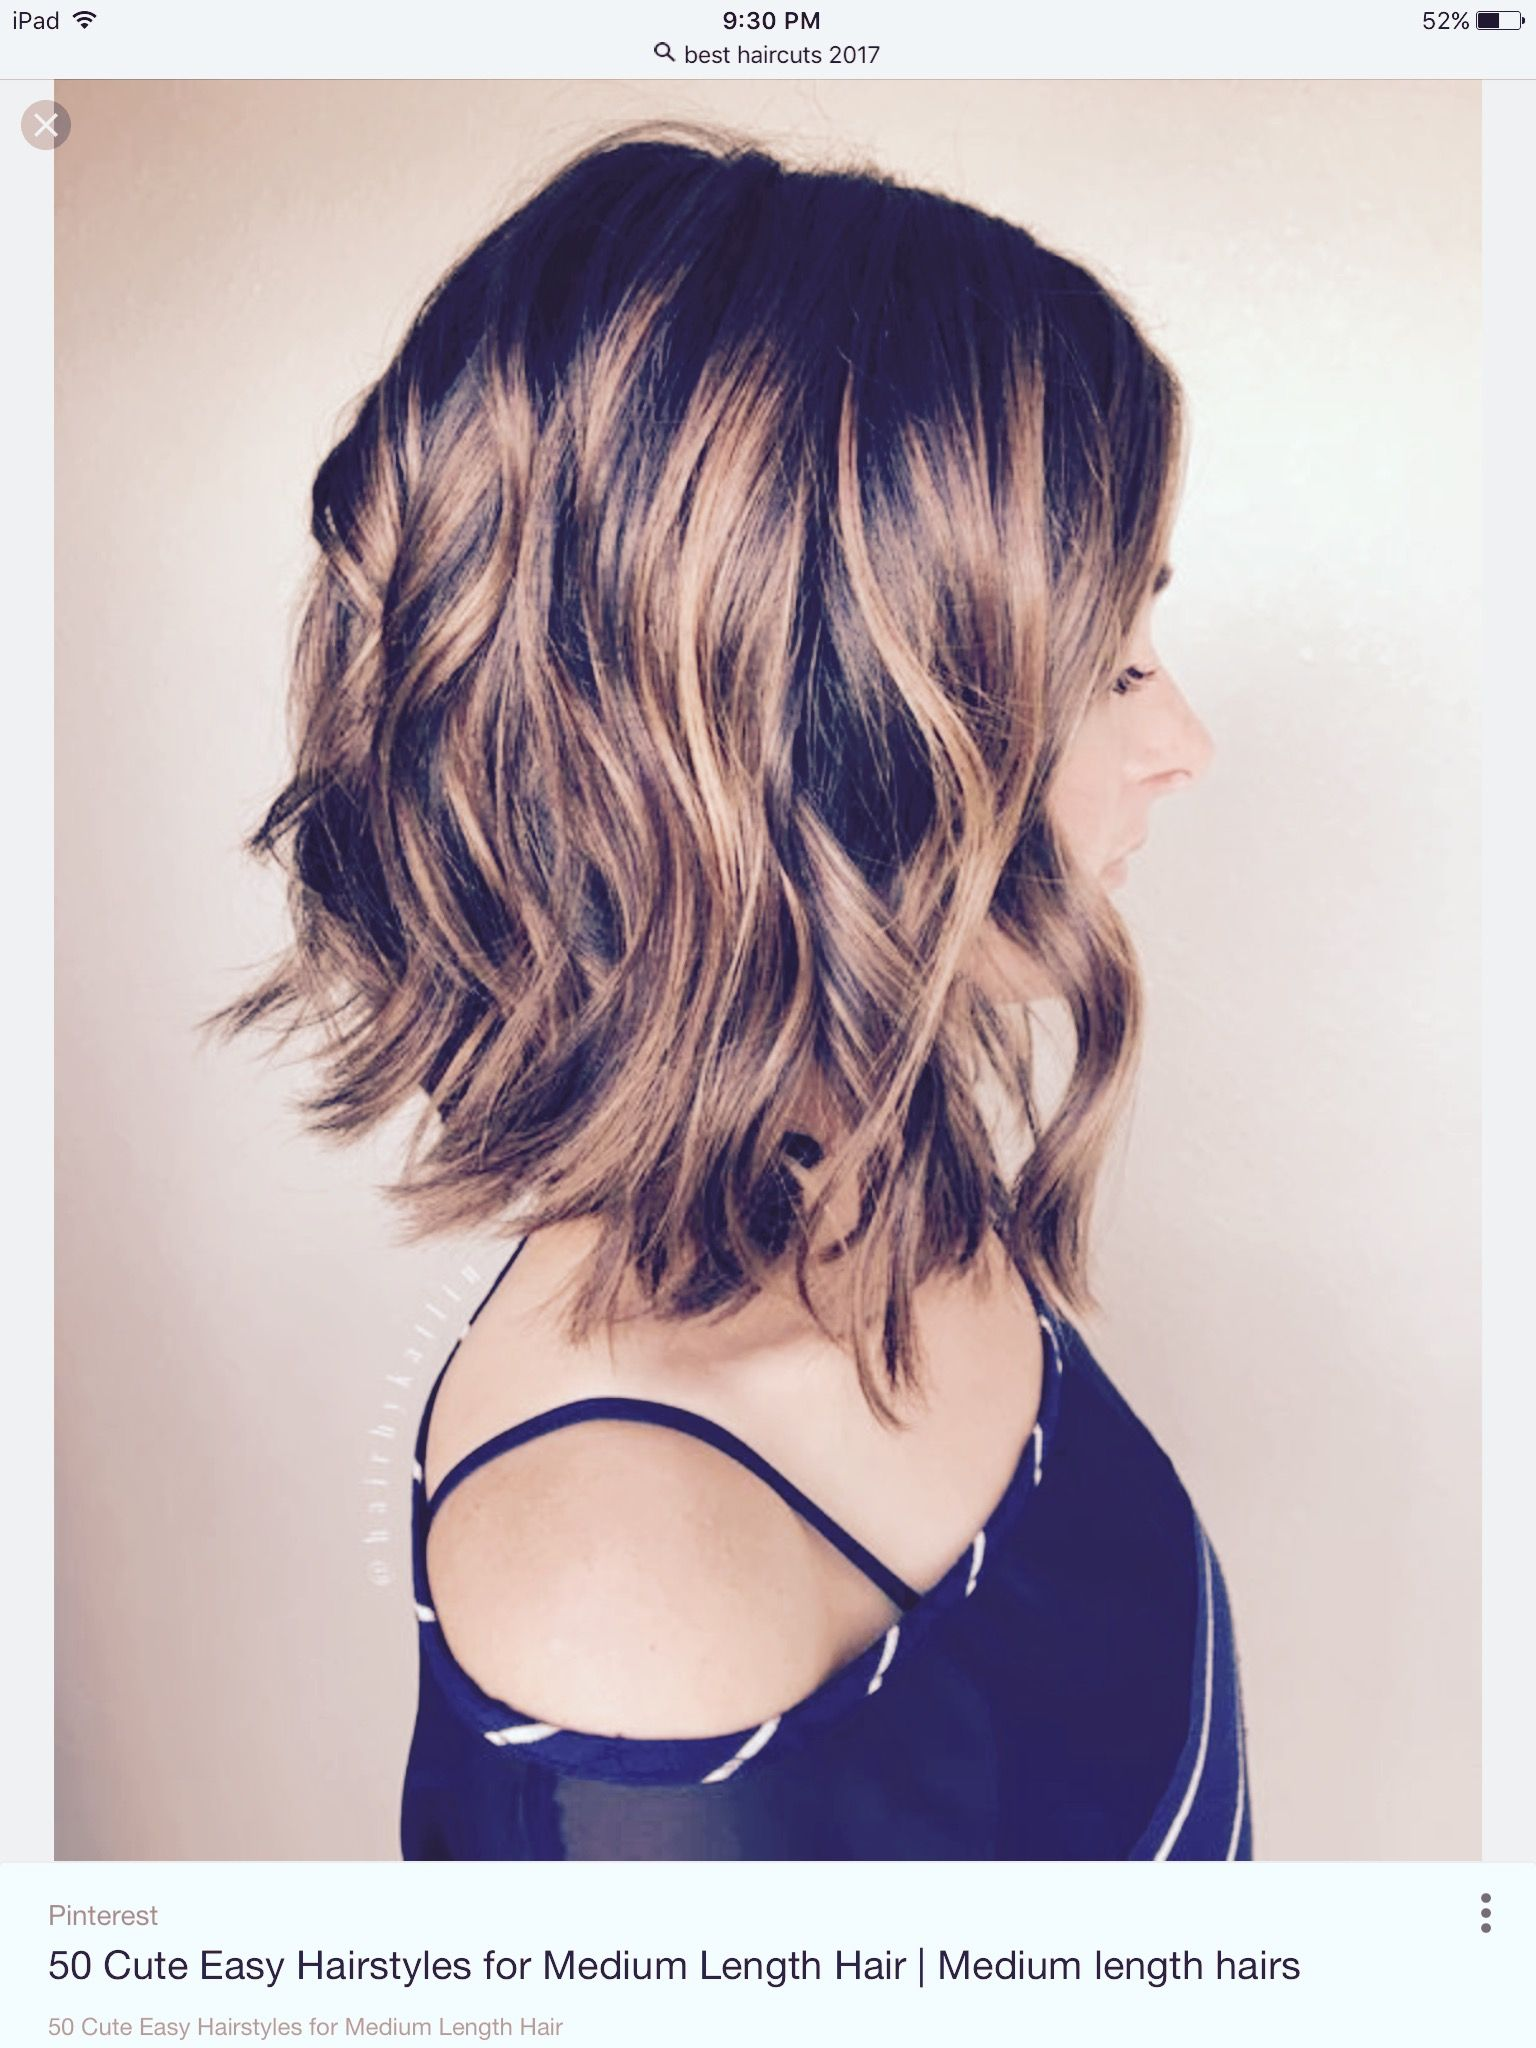 Pin by caley on Haircuts